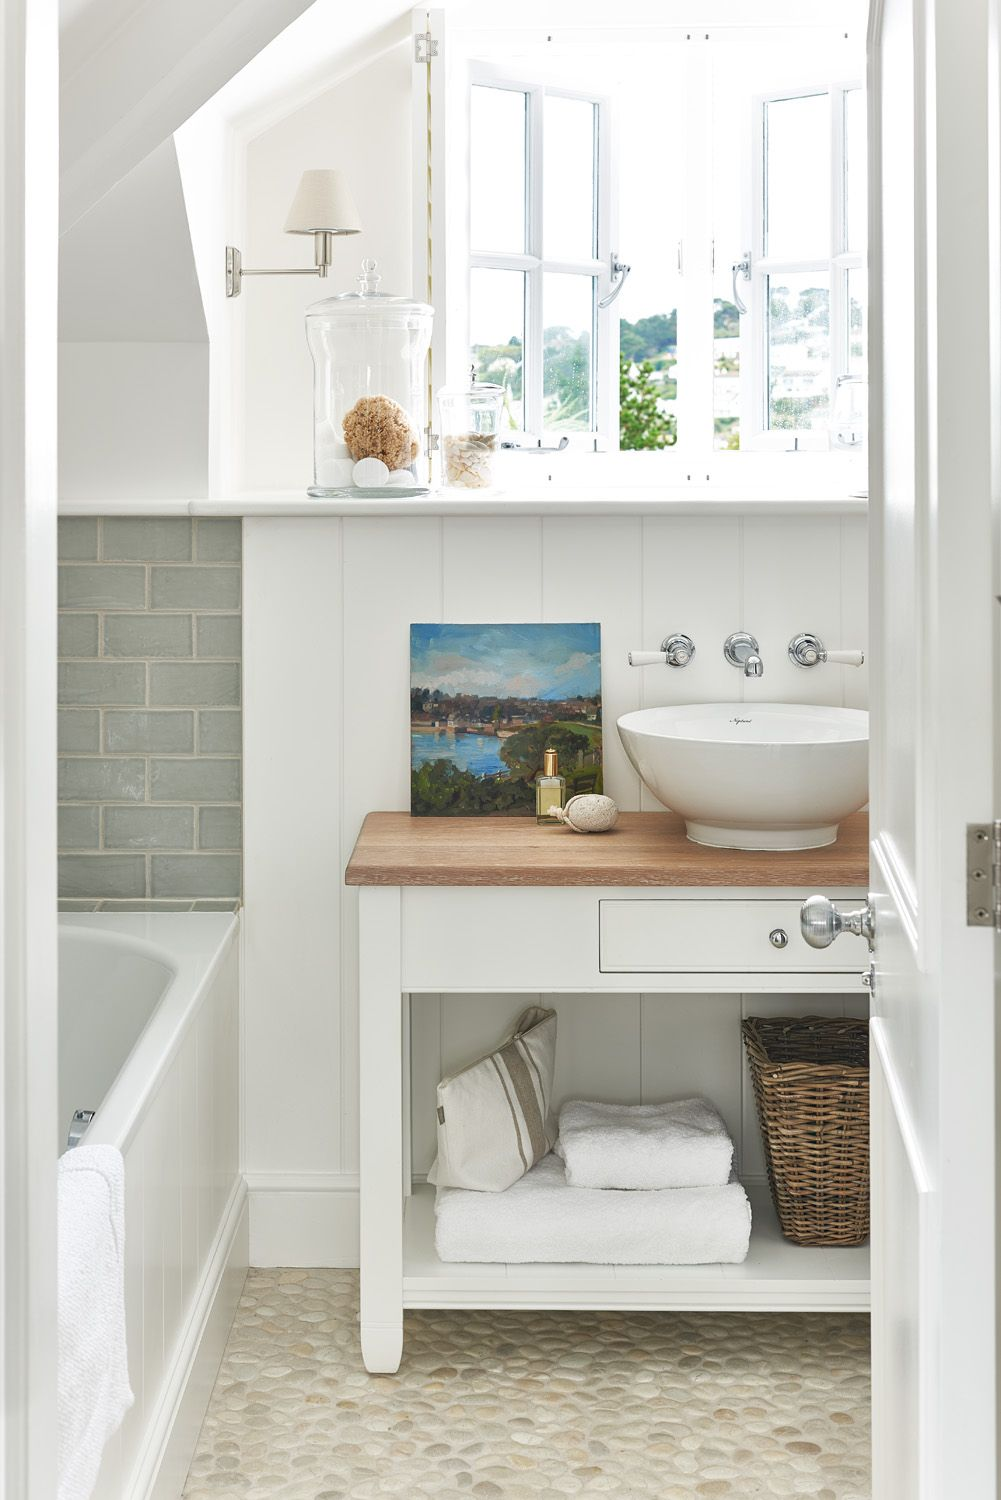 Pin by gina on beach | Pinterest | Bathroom designs, Coastal and ...